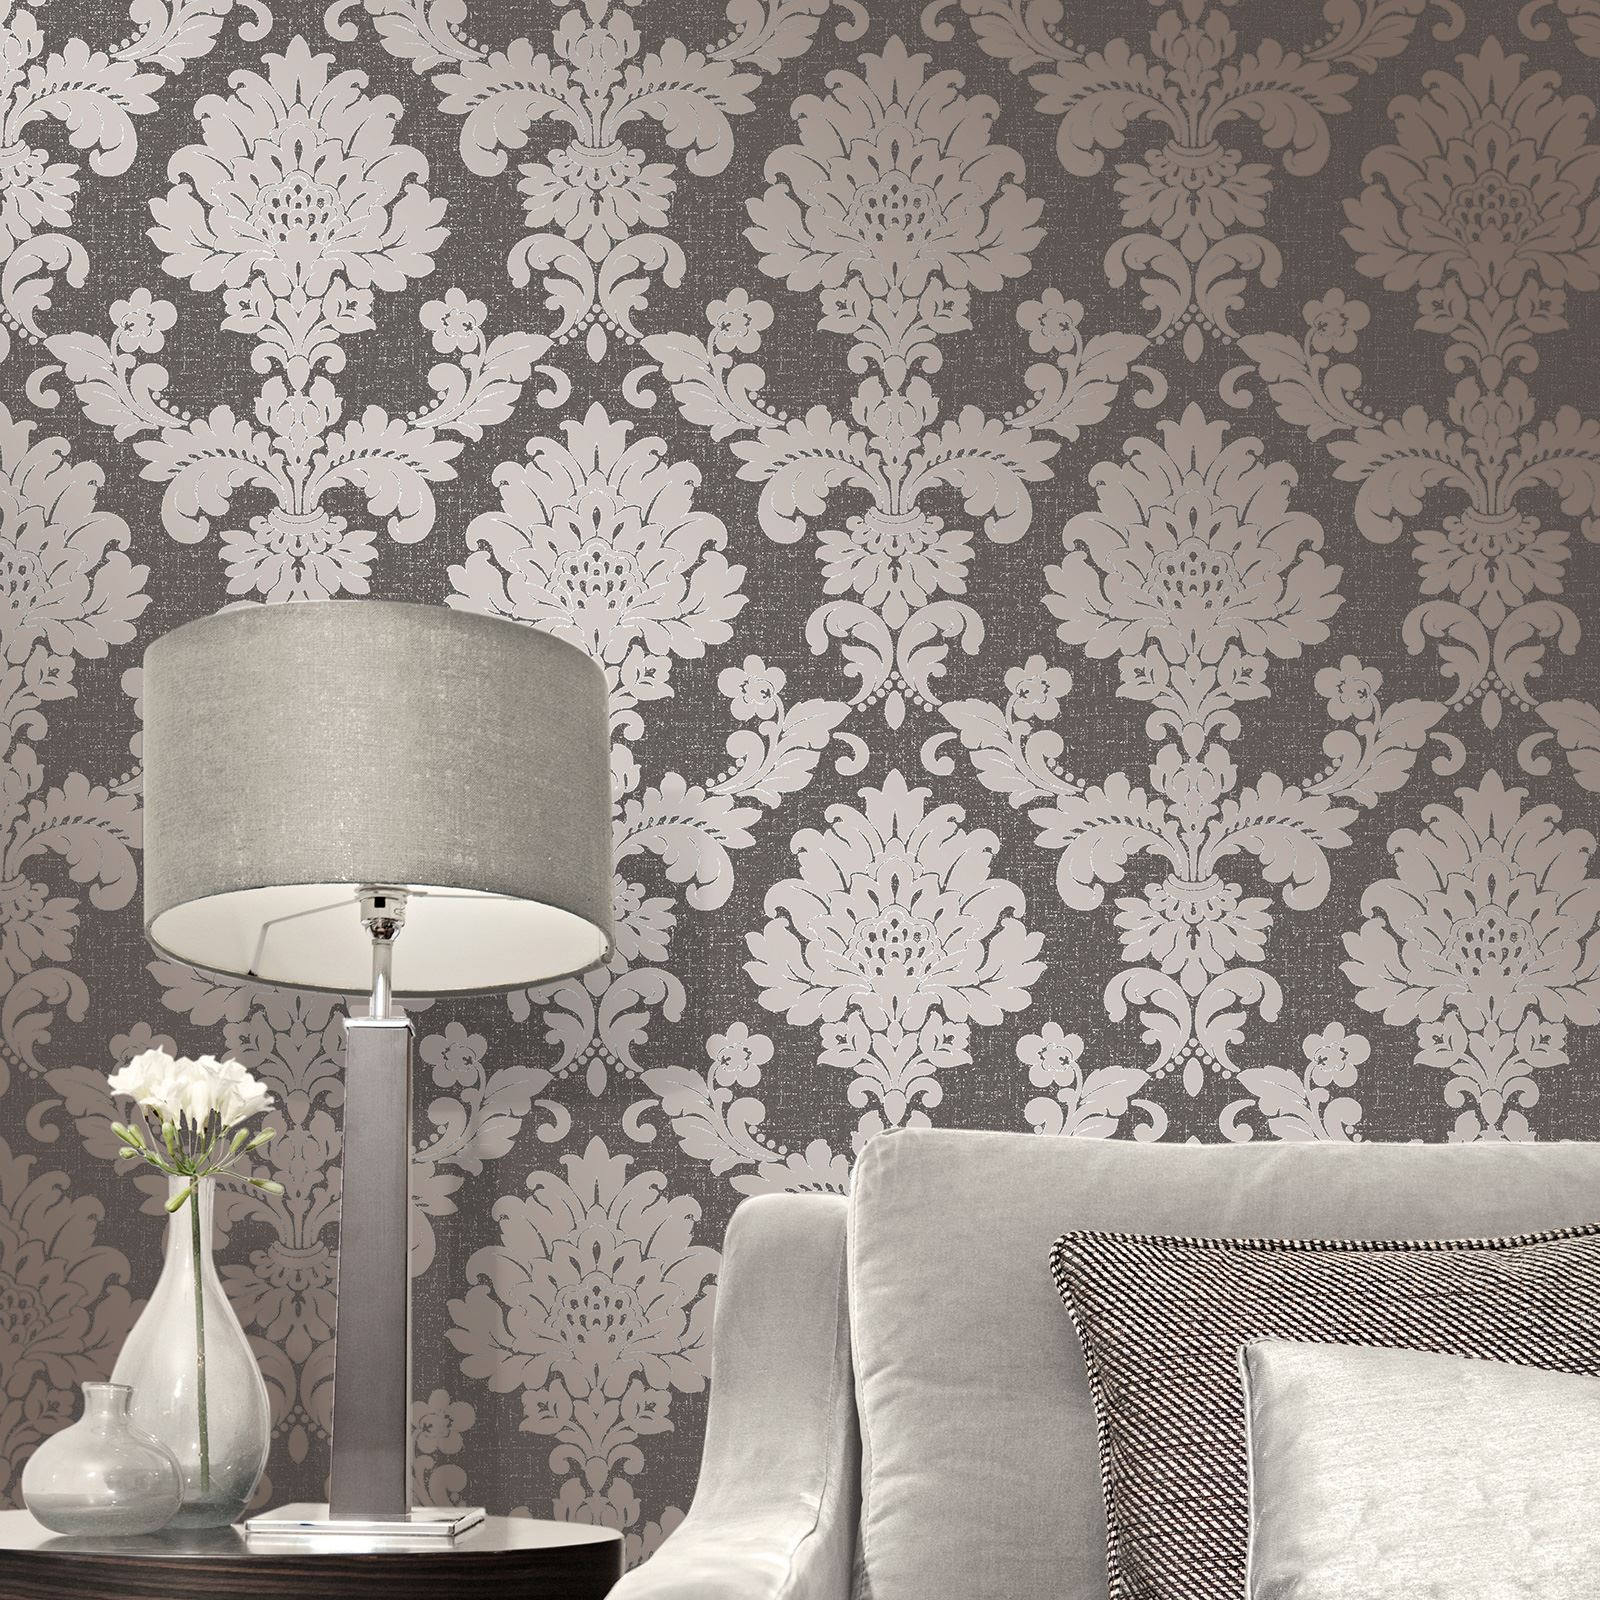 Fine Decor Quartz Wallpaper Metallic Textured Stripes Damask Fractal